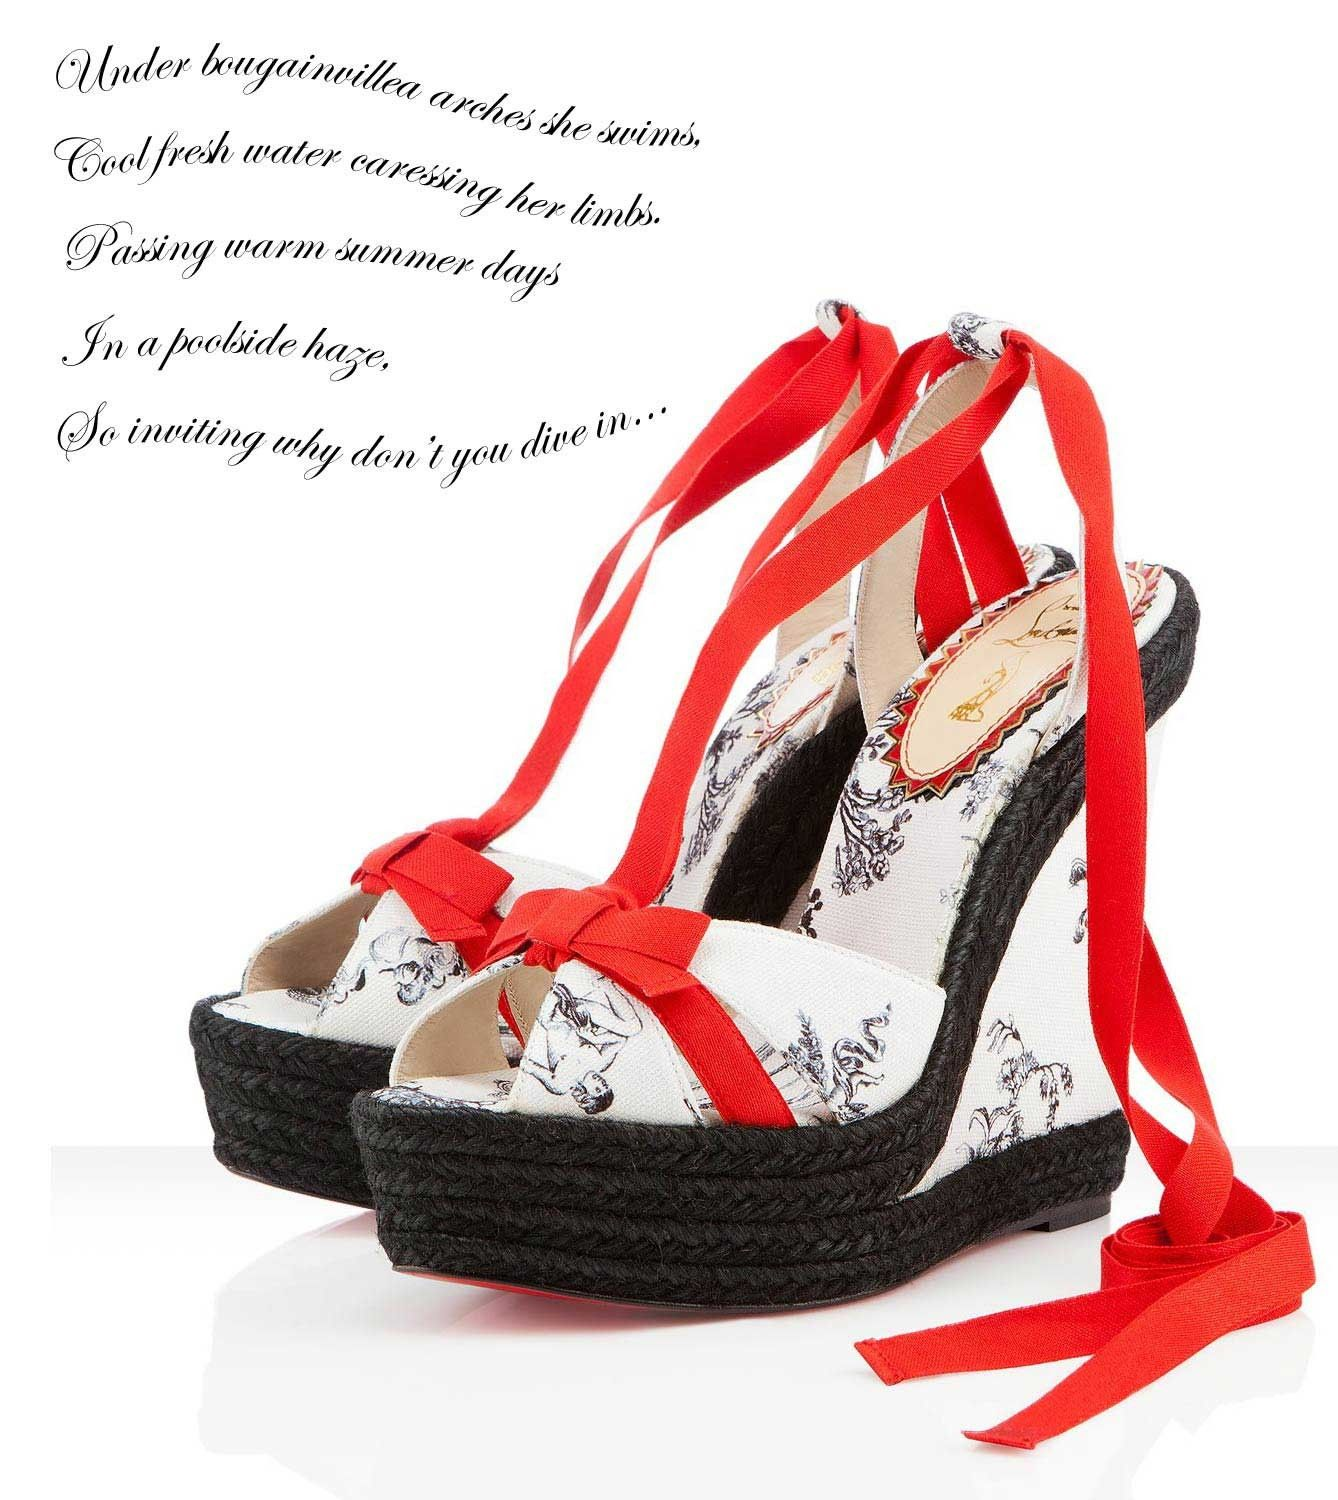 56de1bfeca6 Christian Louboutin Isabelle 140mm Wedges In White Cotton 4